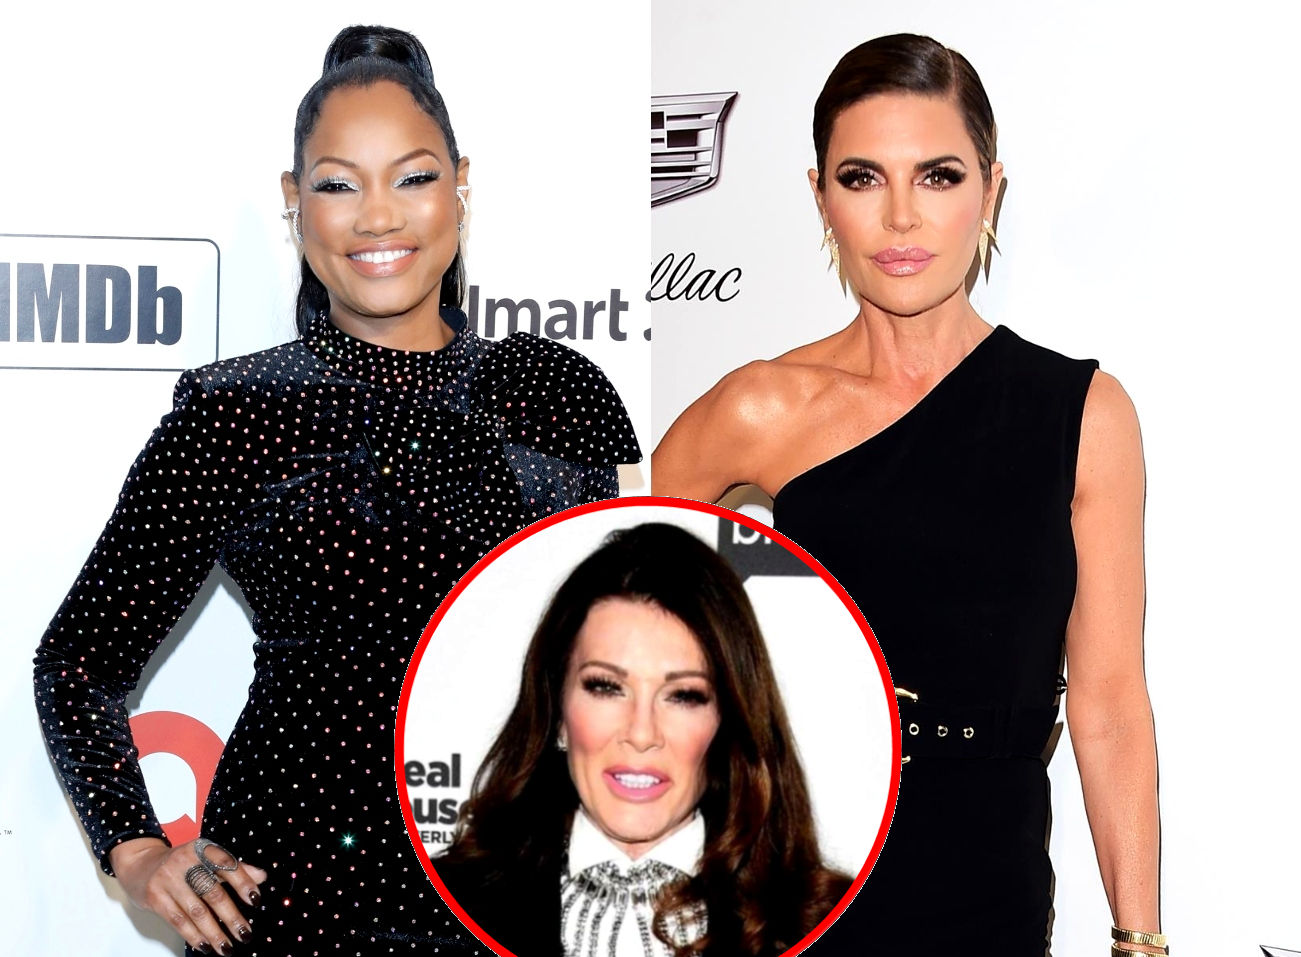 """Garcelle Beauvais Confronts Lisa Rinna For Not Having Her Back as Rinna Says """"B**ch Please,"""" Plus Garcelle Says Lisa Vanderpump Should Return to RHOBH Next Season and Talks Kris Jenner Rumors"""